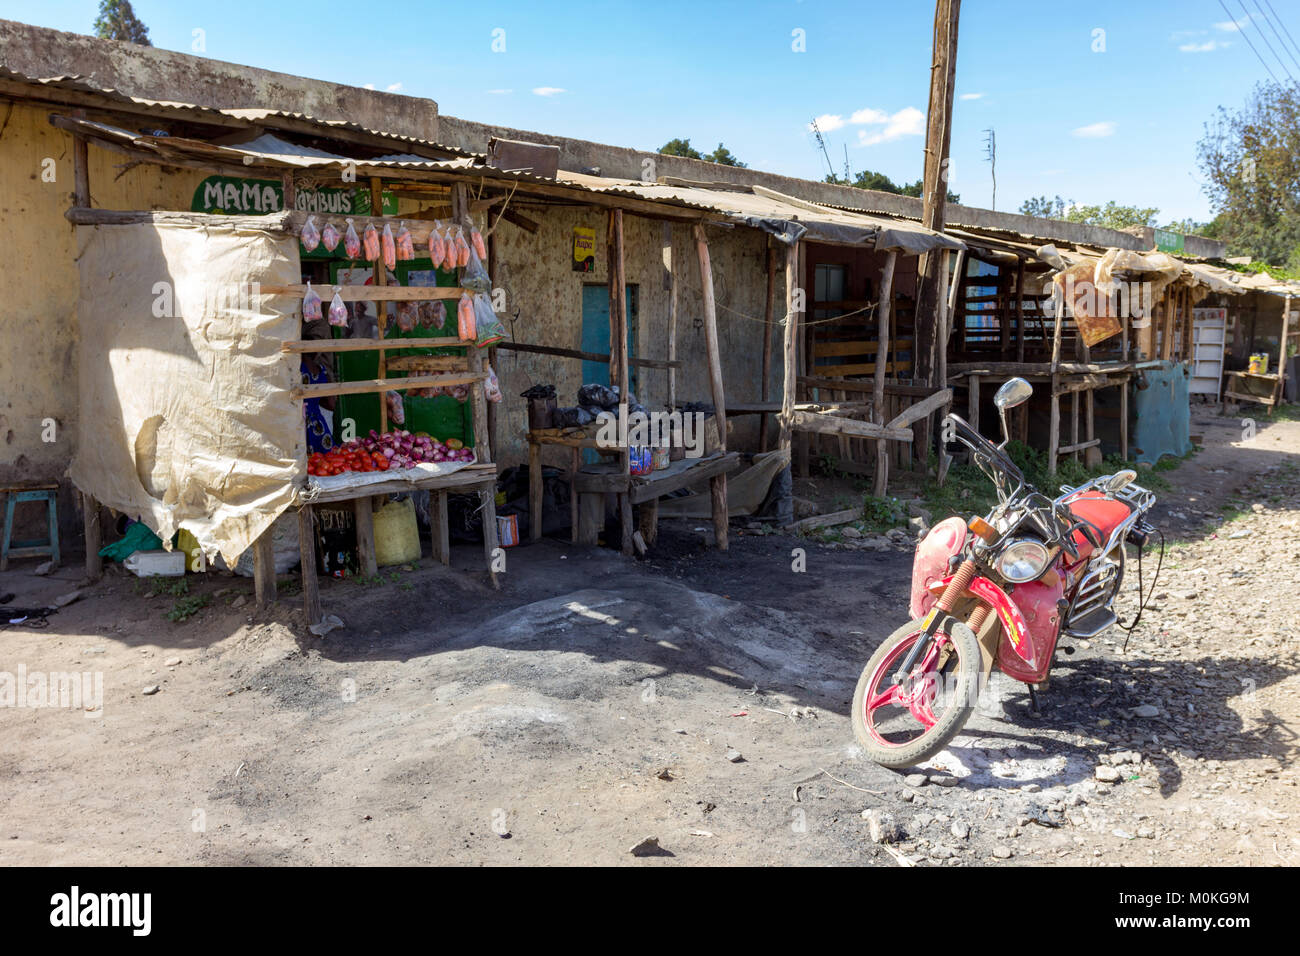 Lifestyle scene of a row of homes with makeshift shop fronts in Nanyuki, Kenya. Stock Photo